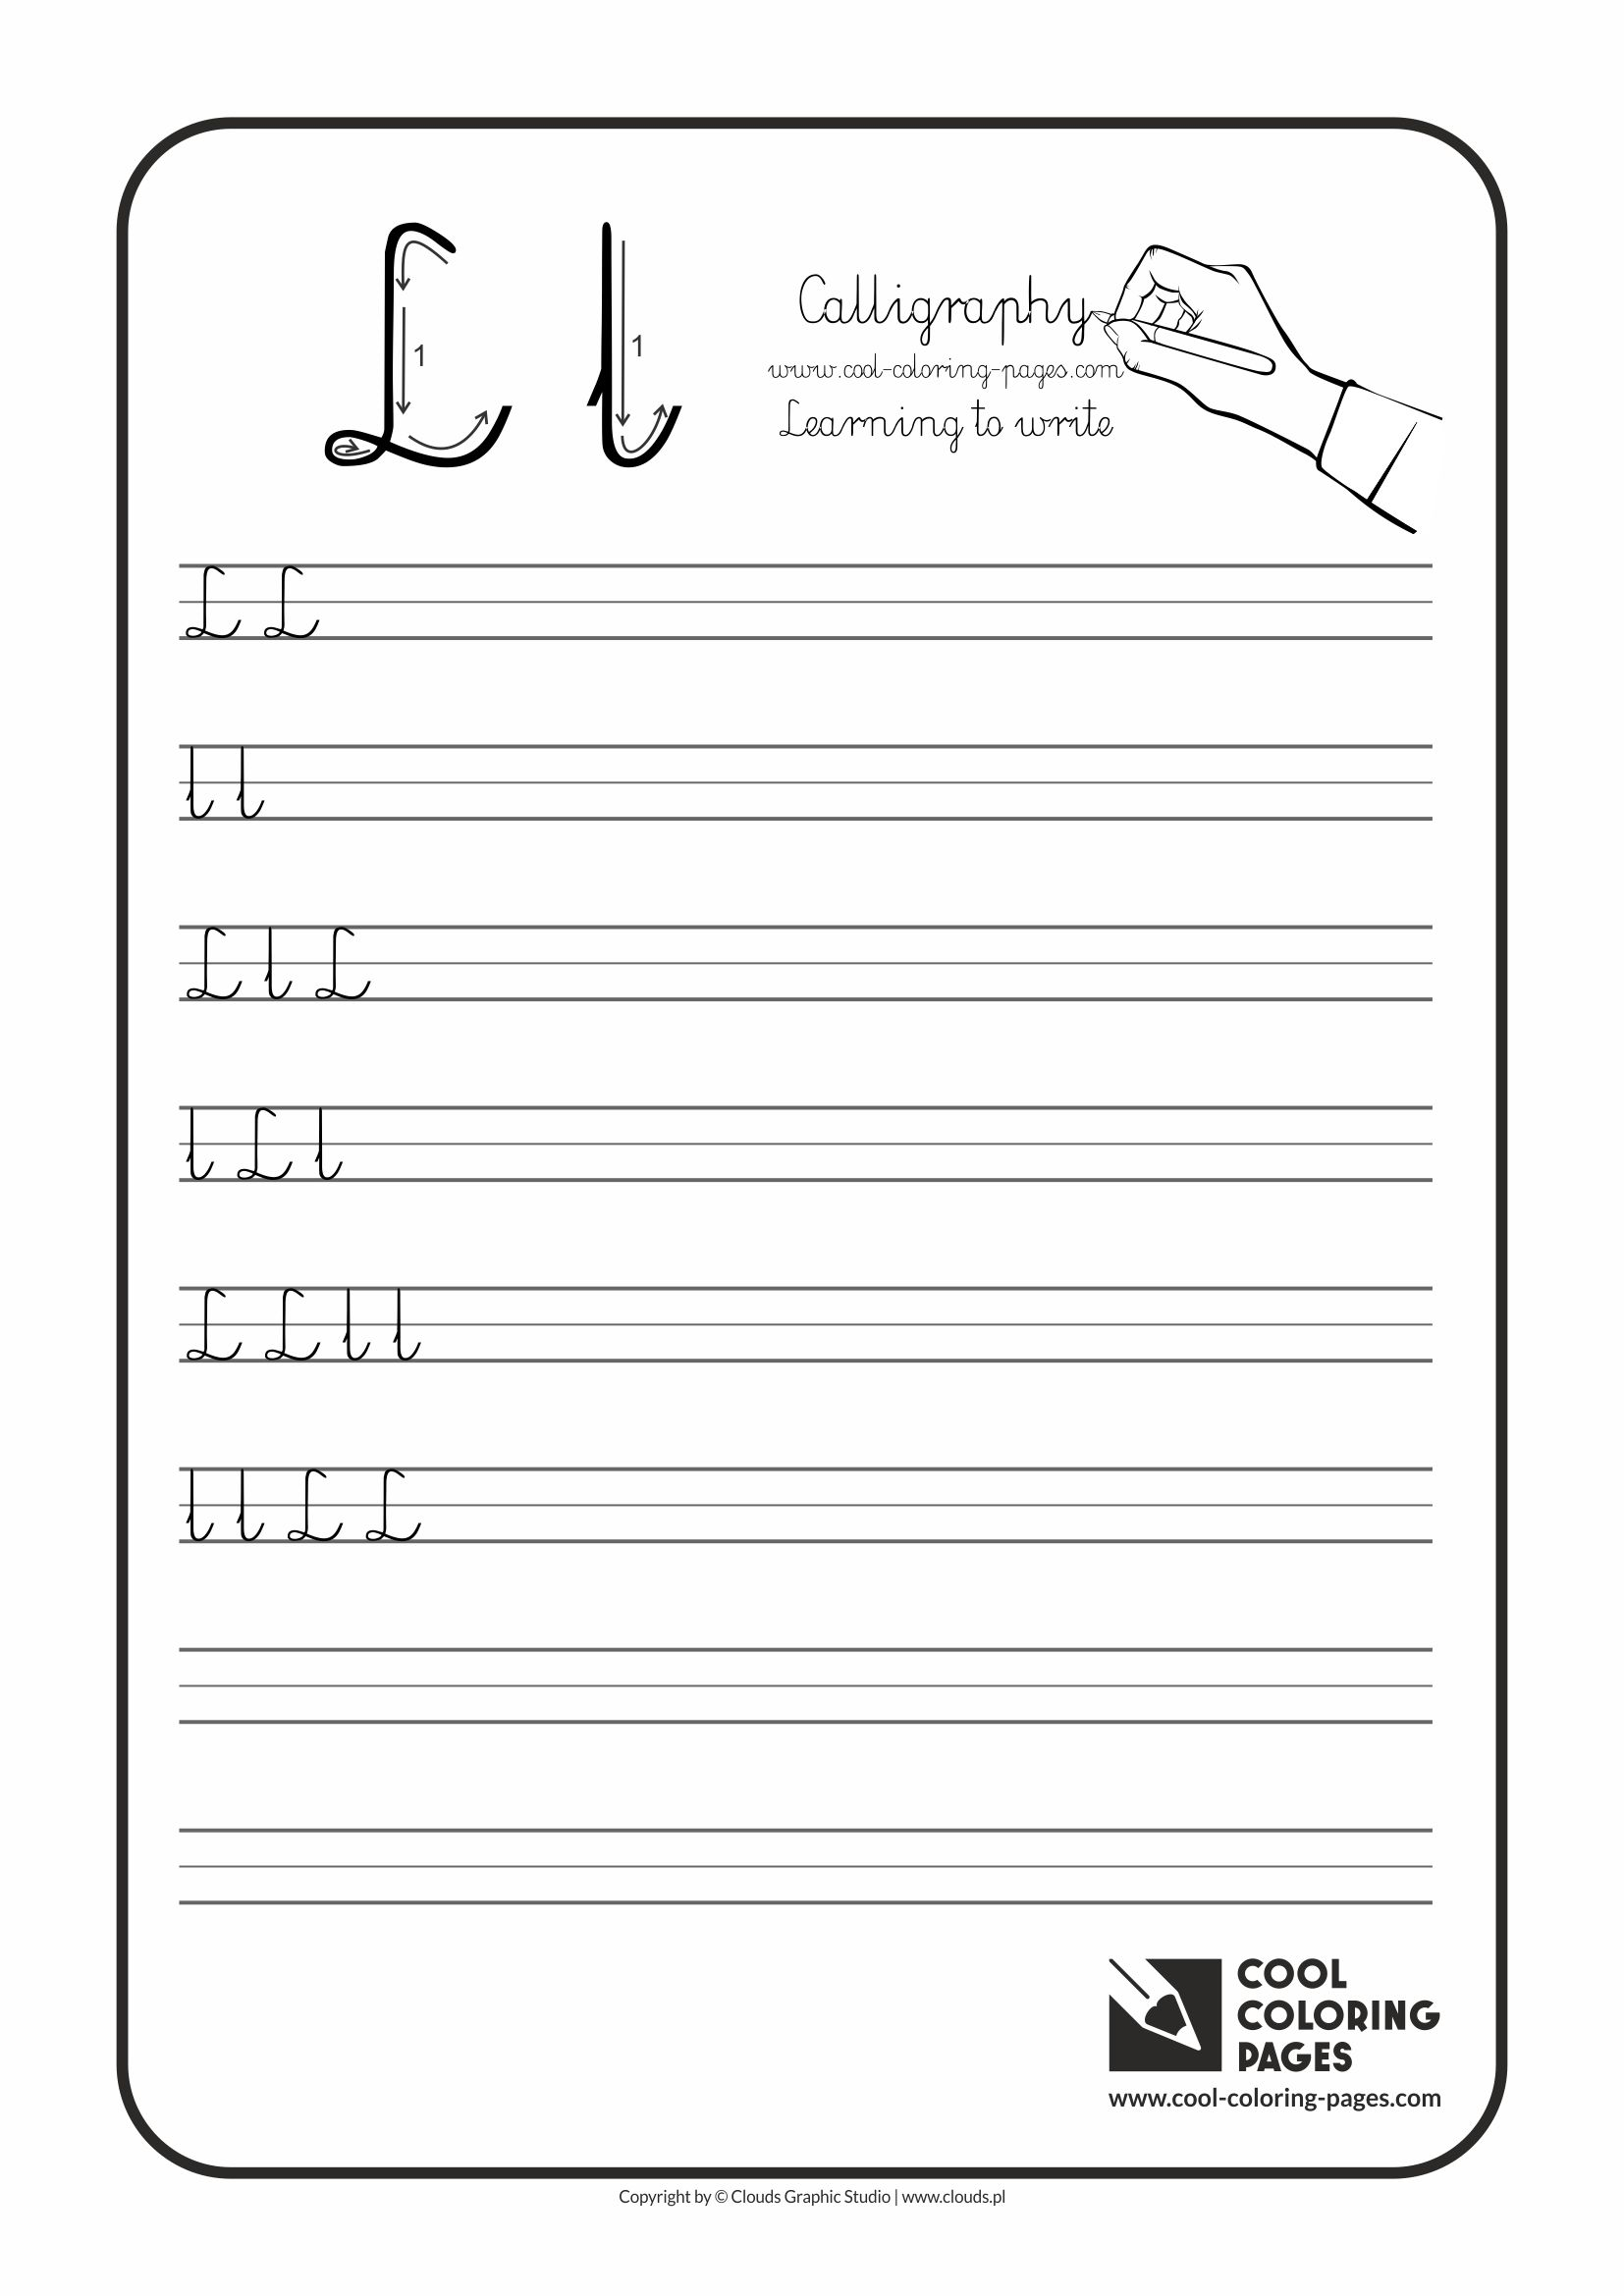 Letter W Is For Watermelon Handwriting Practice Worksheet Puzzle Game additionally In The Classroom Vocabulary Premium Worksheets For Kids Englishwsheets likewise Big Worldwide Alphabet Quiz additionally Small Cursive Letters Advan further Cursive B. on letter w worksheets